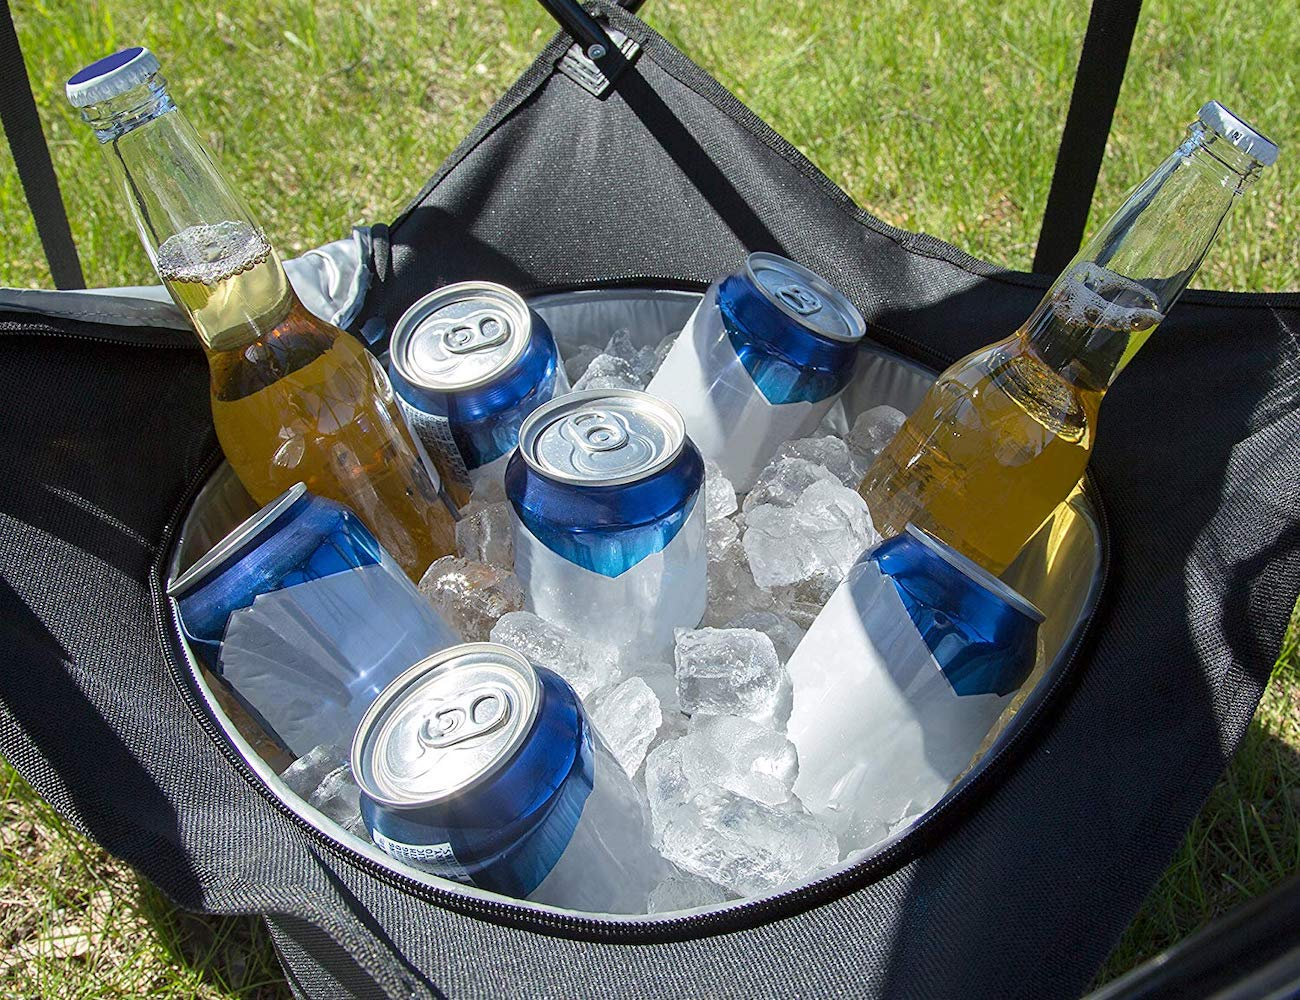 Folding Tailgating Table ensures your drinks stay cold